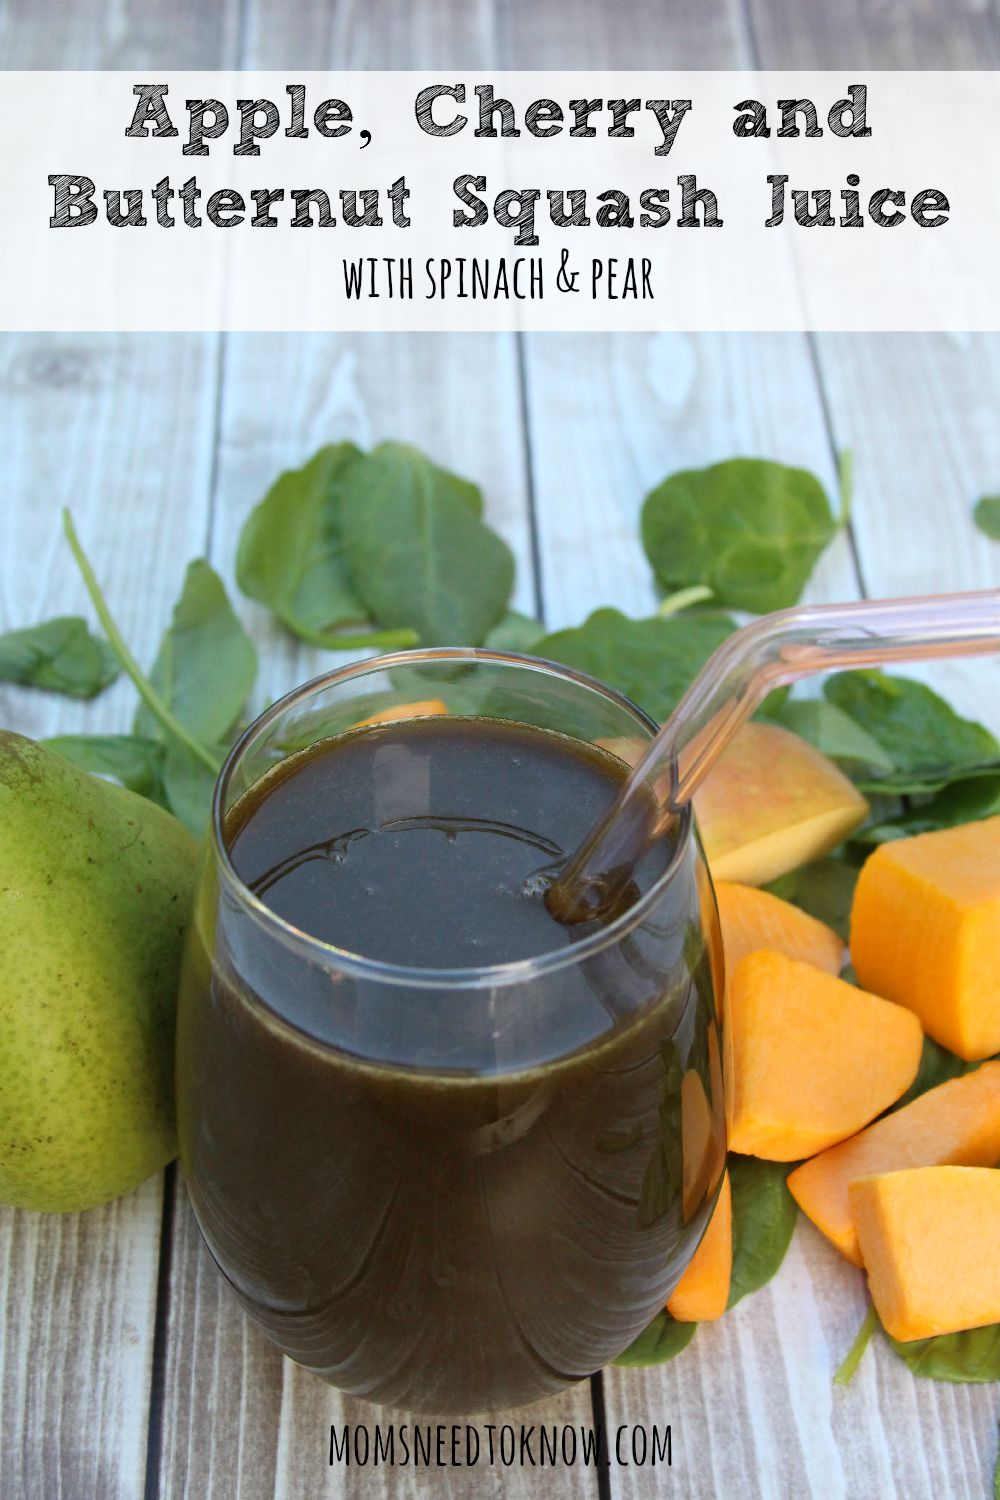 Apple Cherry and Butternut Squash Juice with Spinach and Pear